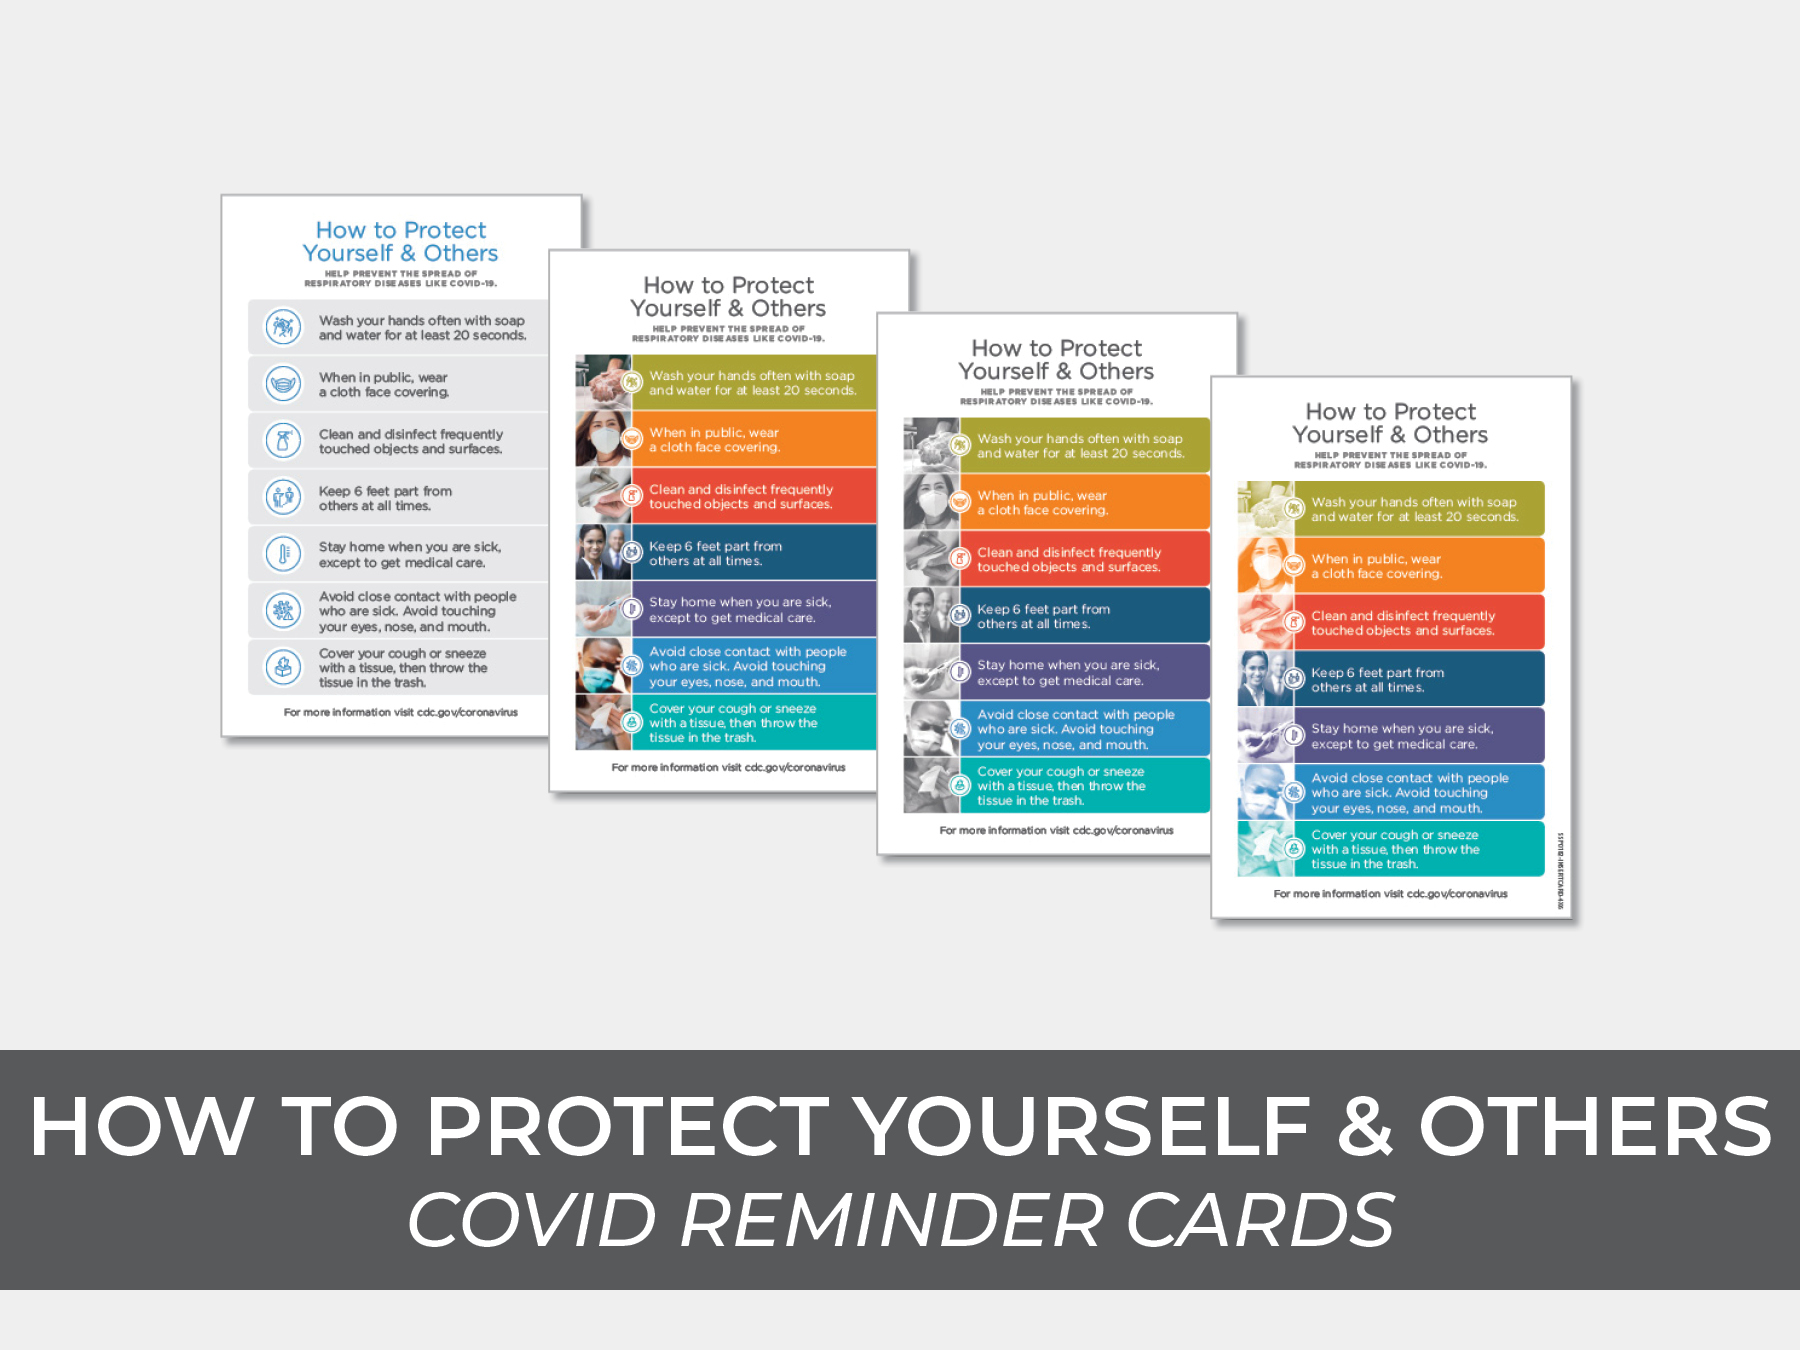 How to Protect Others Reminder Cards